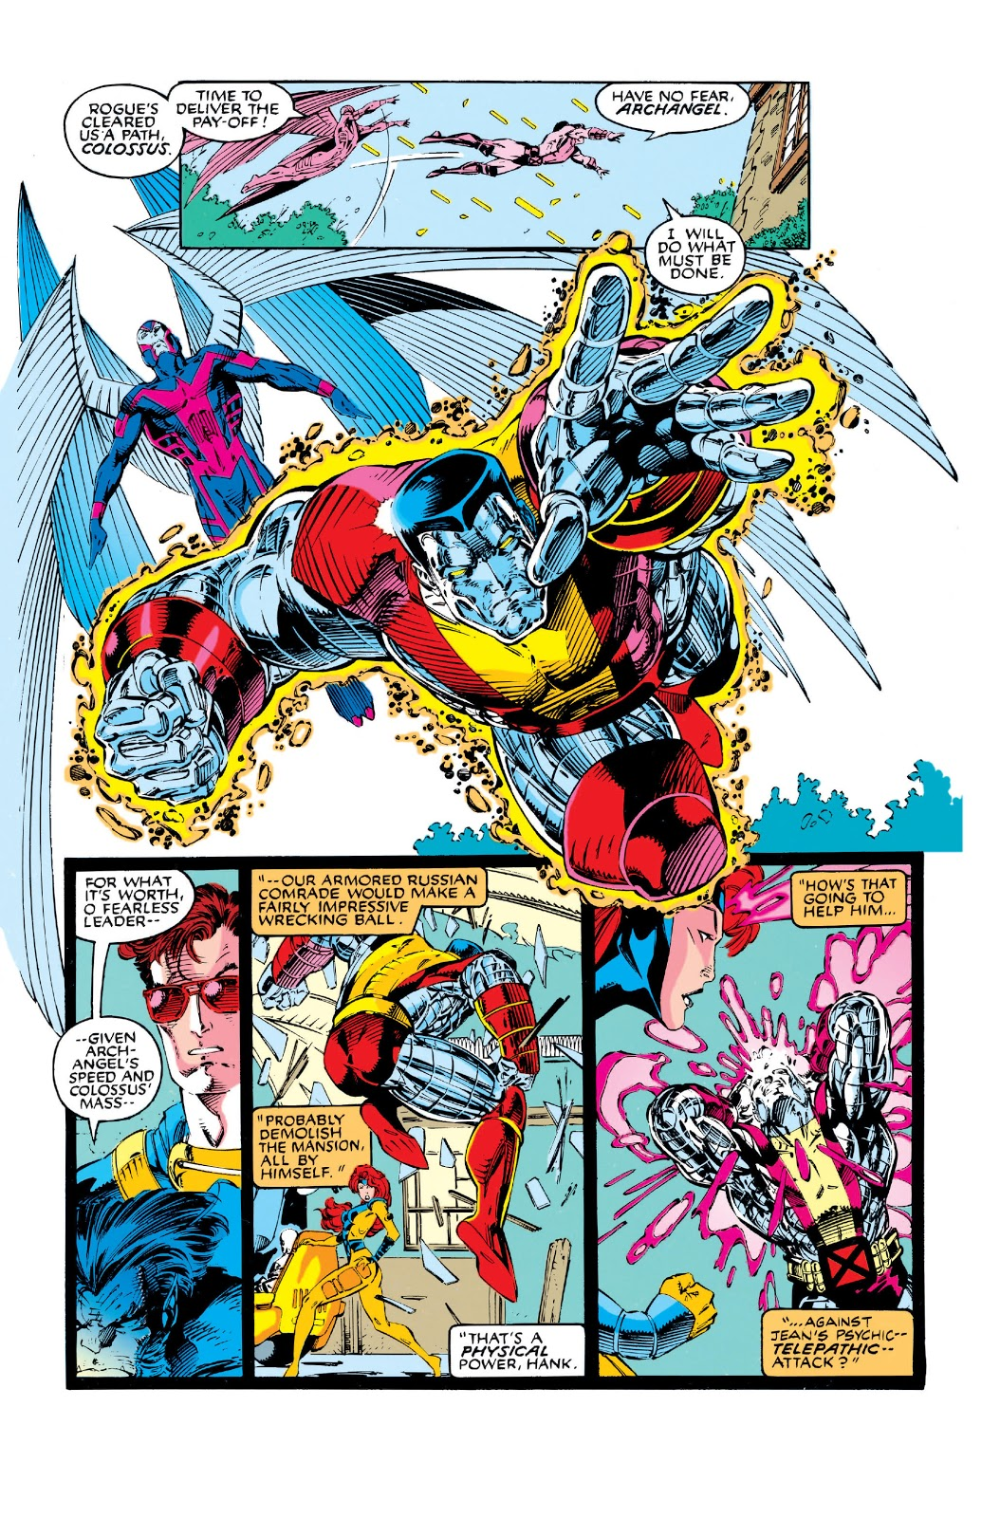 X Men 1991 Issue 1 Read X Men 1991 Issue 1 Comic Online In High Quality Super Heroi Marvel Comics Herois